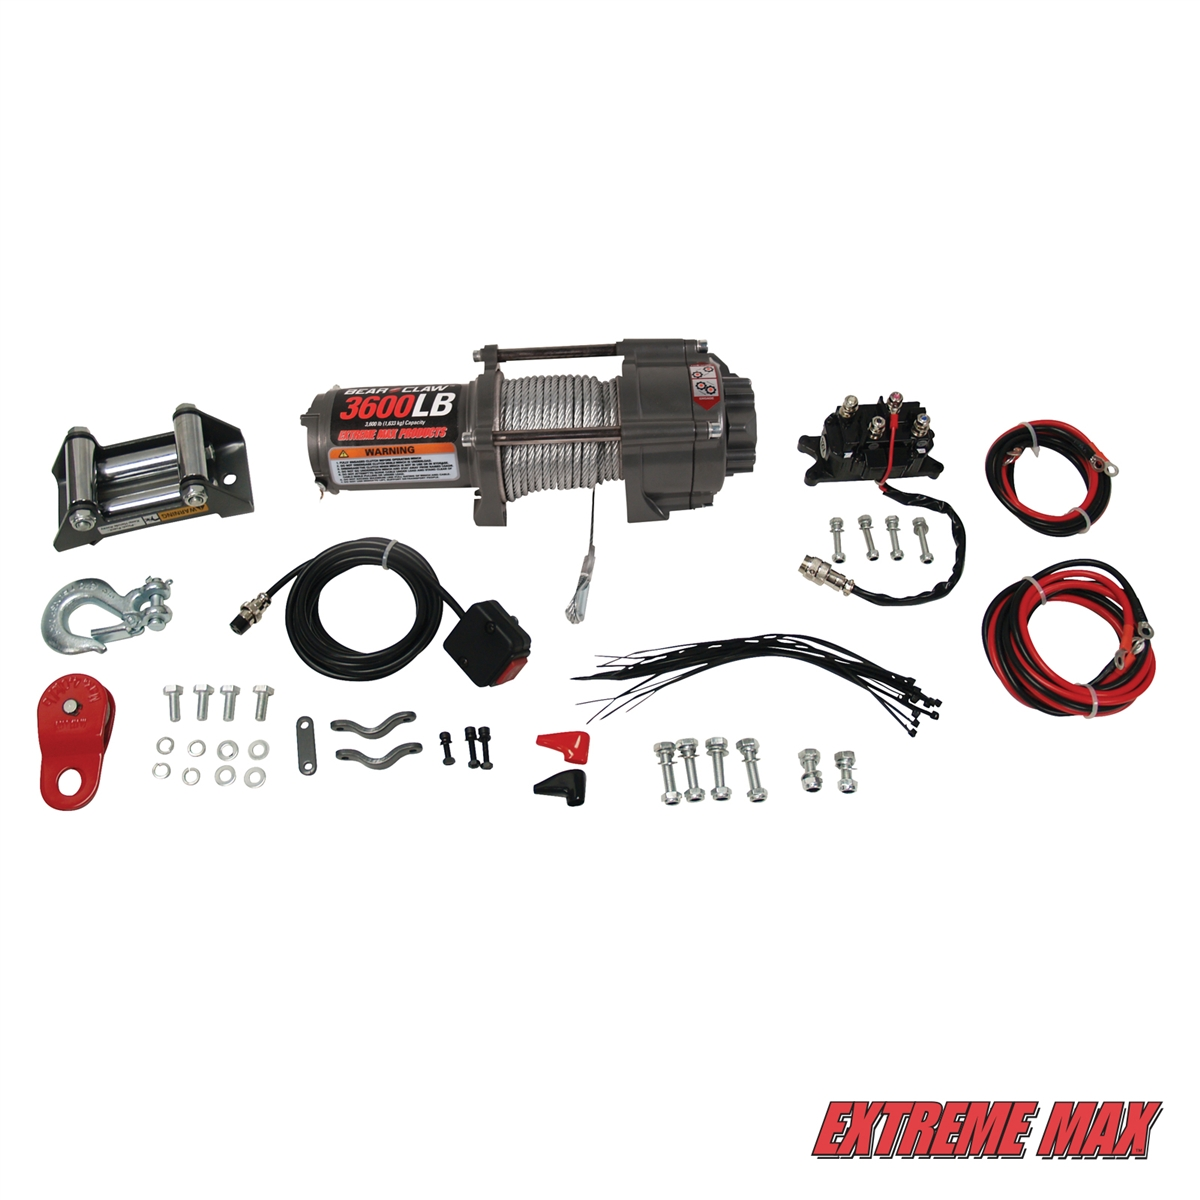 5600.3072 5 extreme max 5600 3072 bear claw atv winch 3100 lb bear claw winch wiring diagram at edmiracle.co